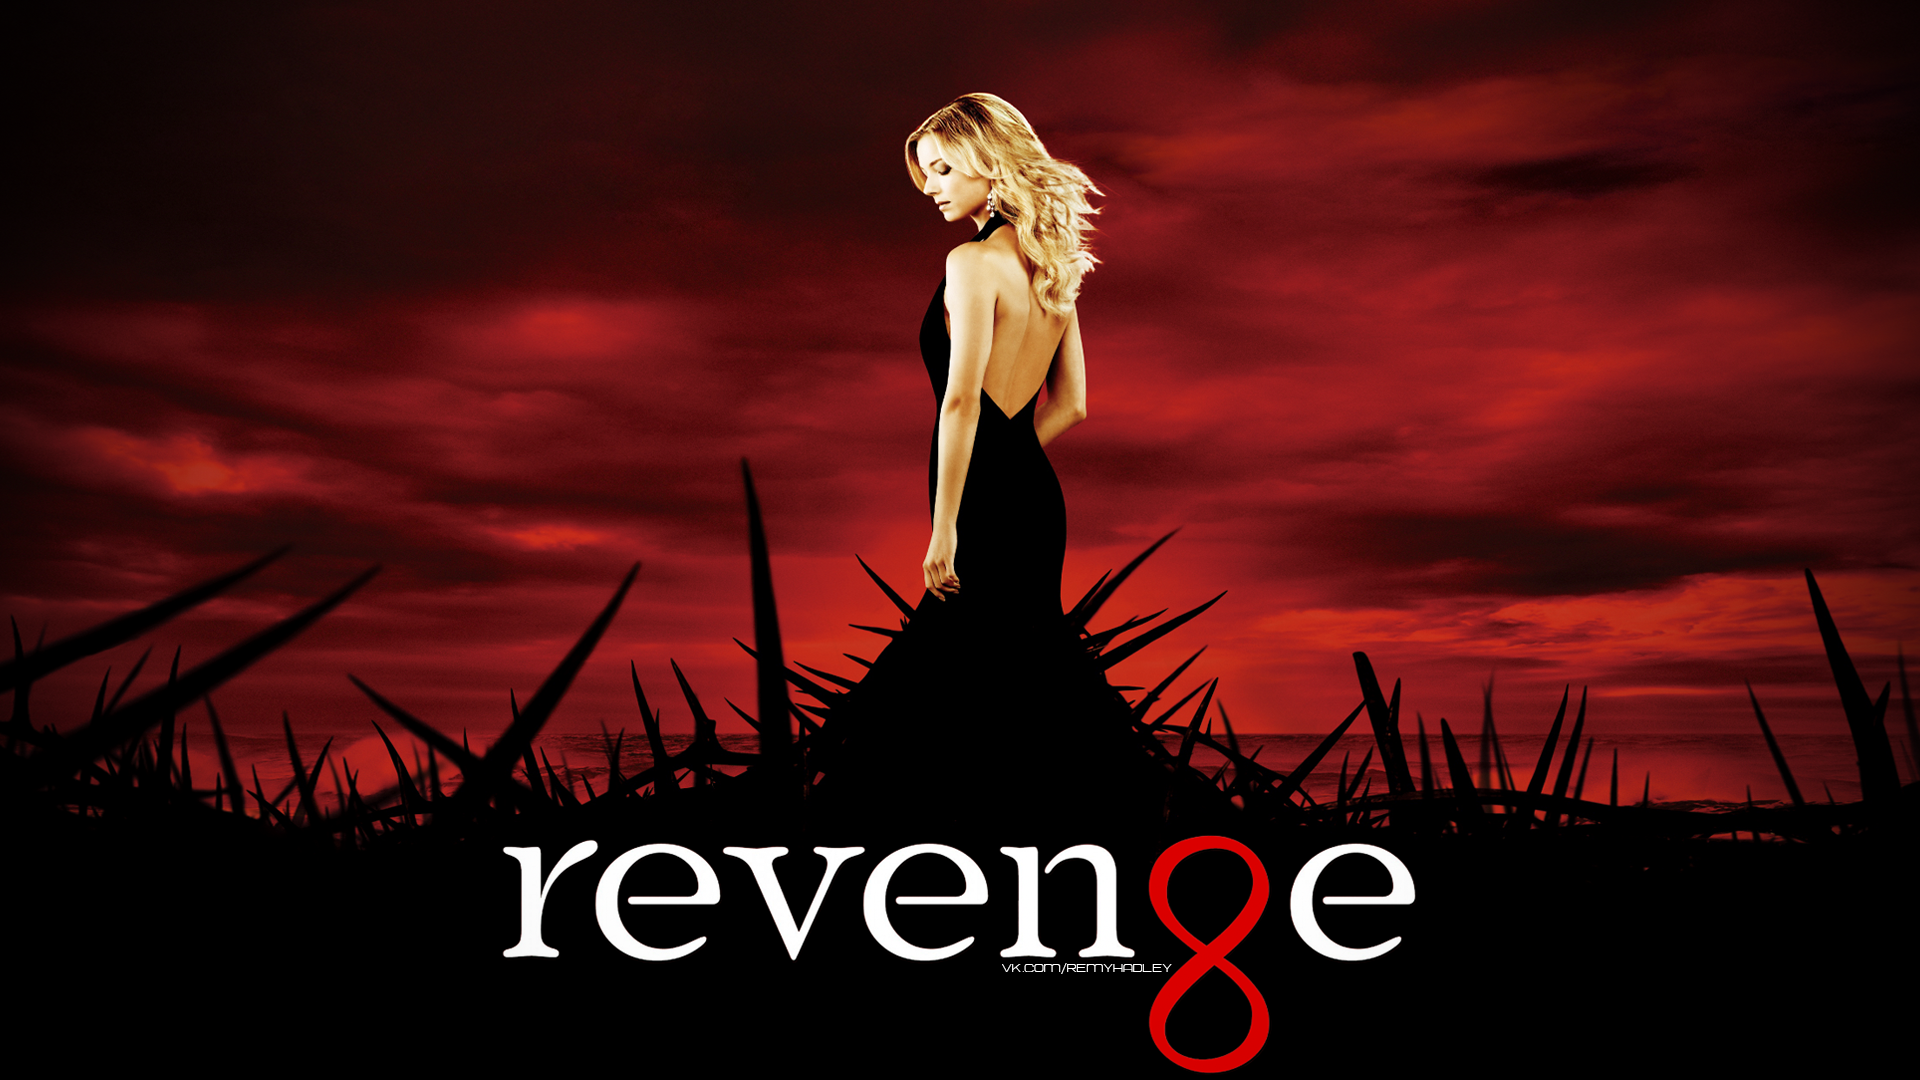 season 2 poster - Revenge Photo (37540676) - Fanpop